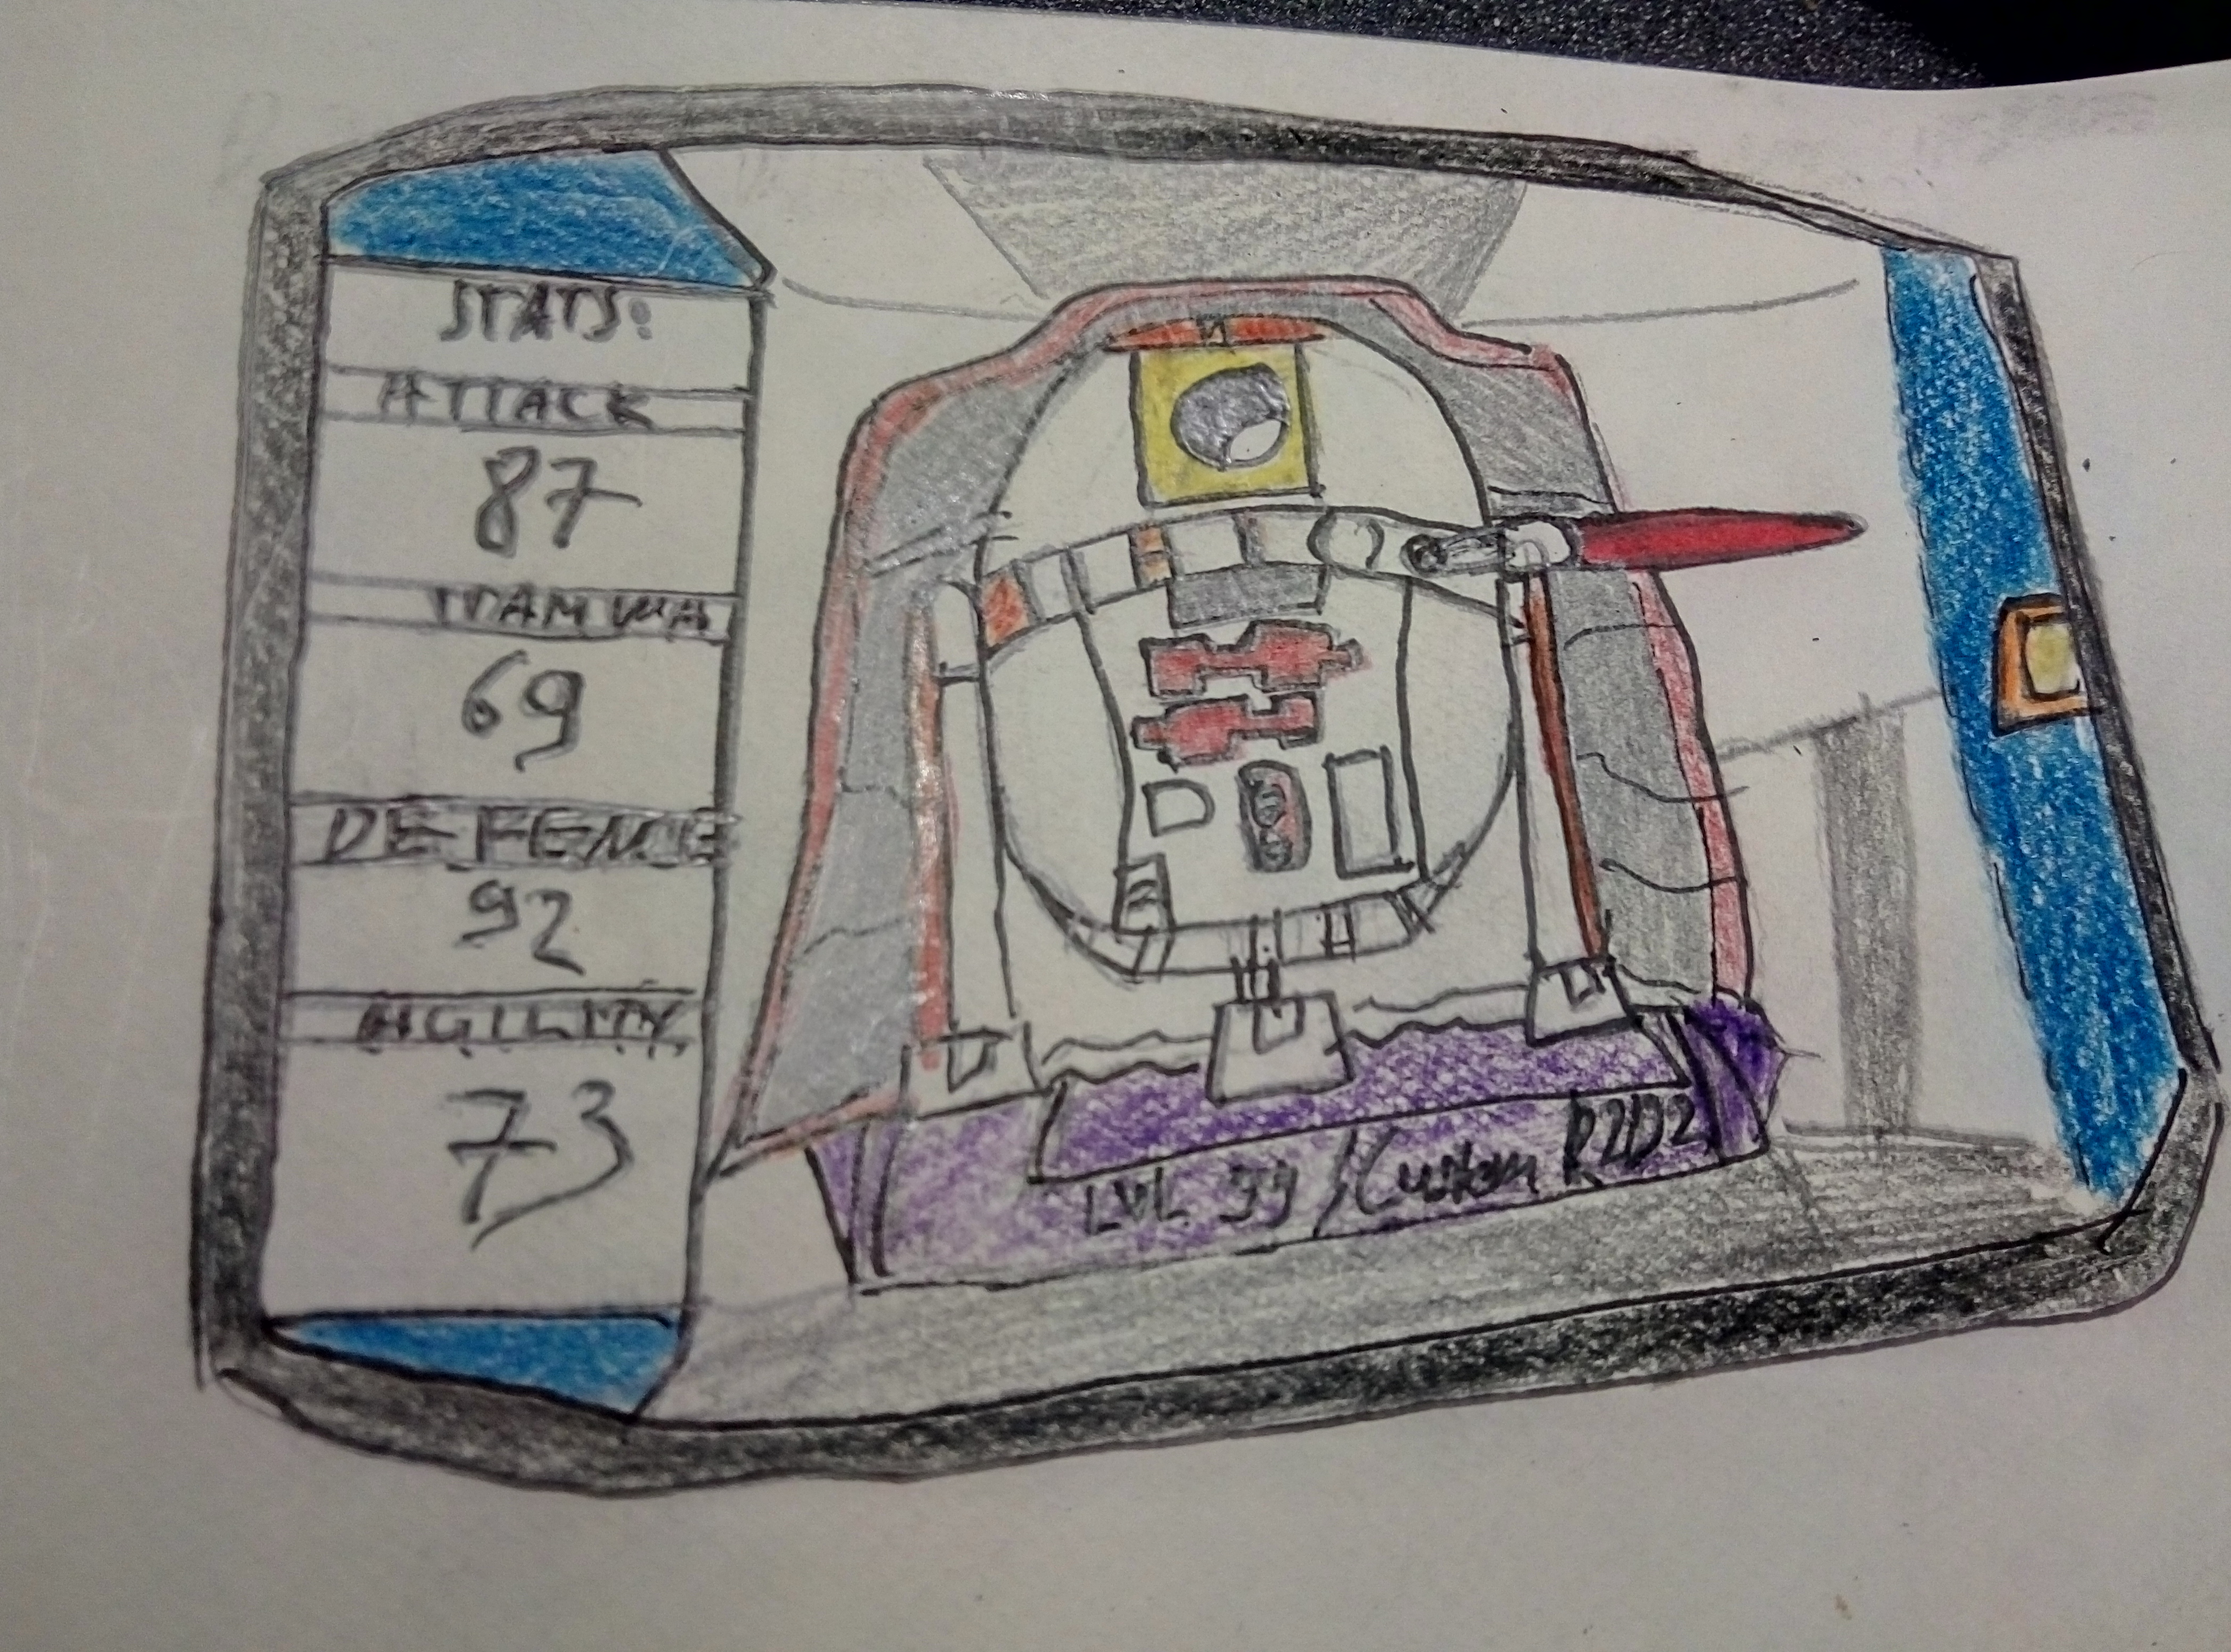 Ultimate R2D2_My first artwork on newgrounds.